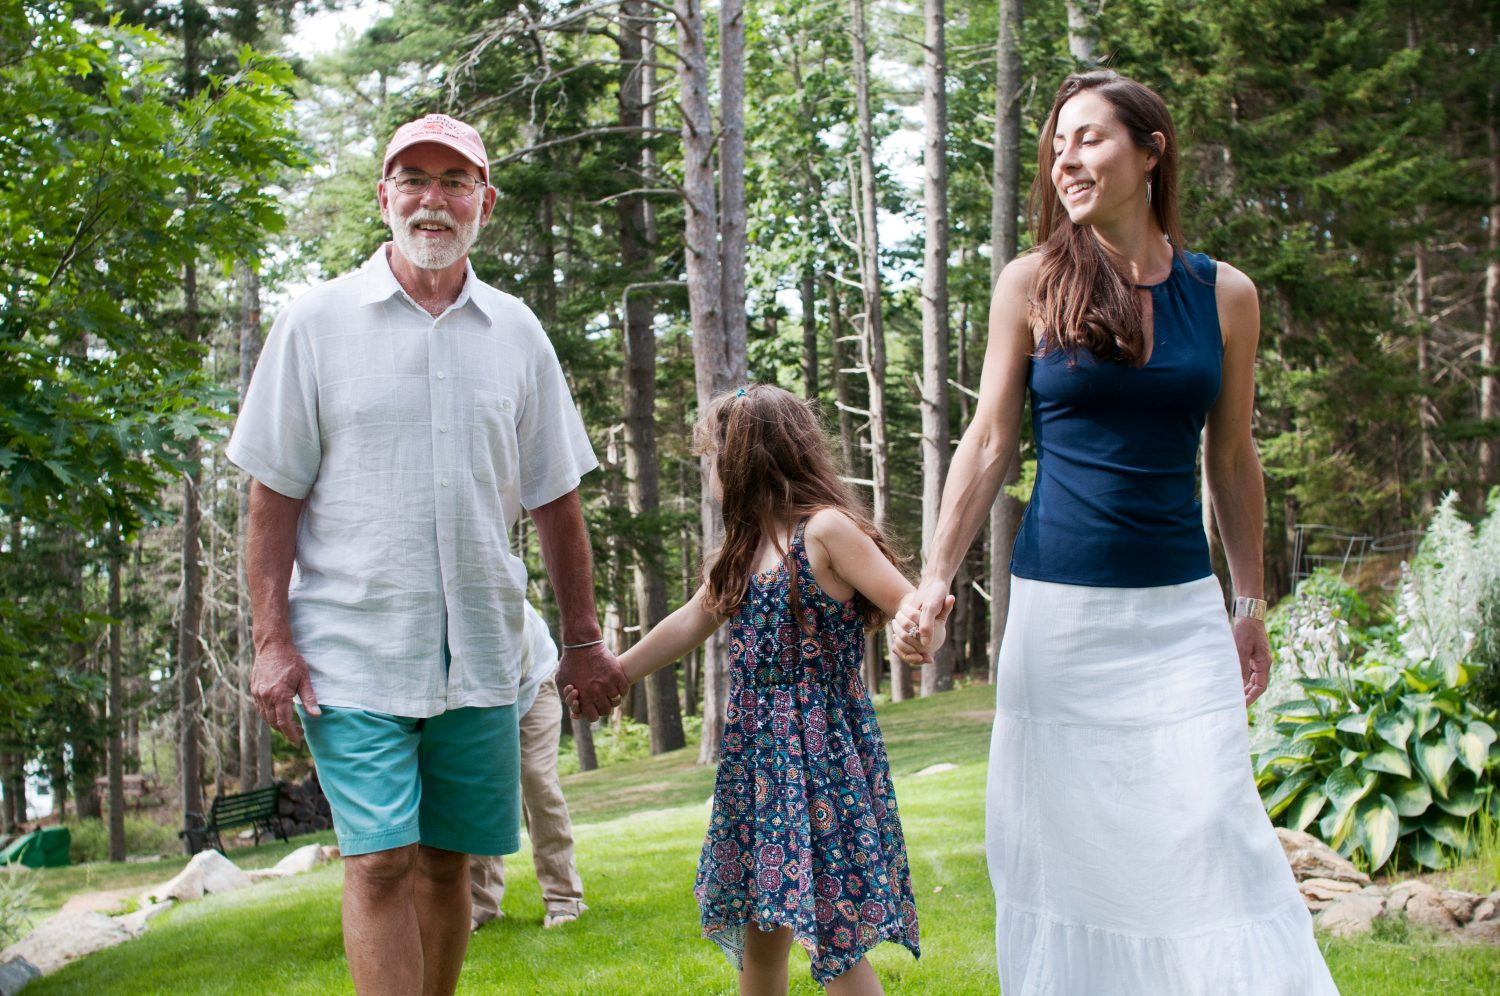 grandfather, daughter and granddaughter walking together through the grass holding hands